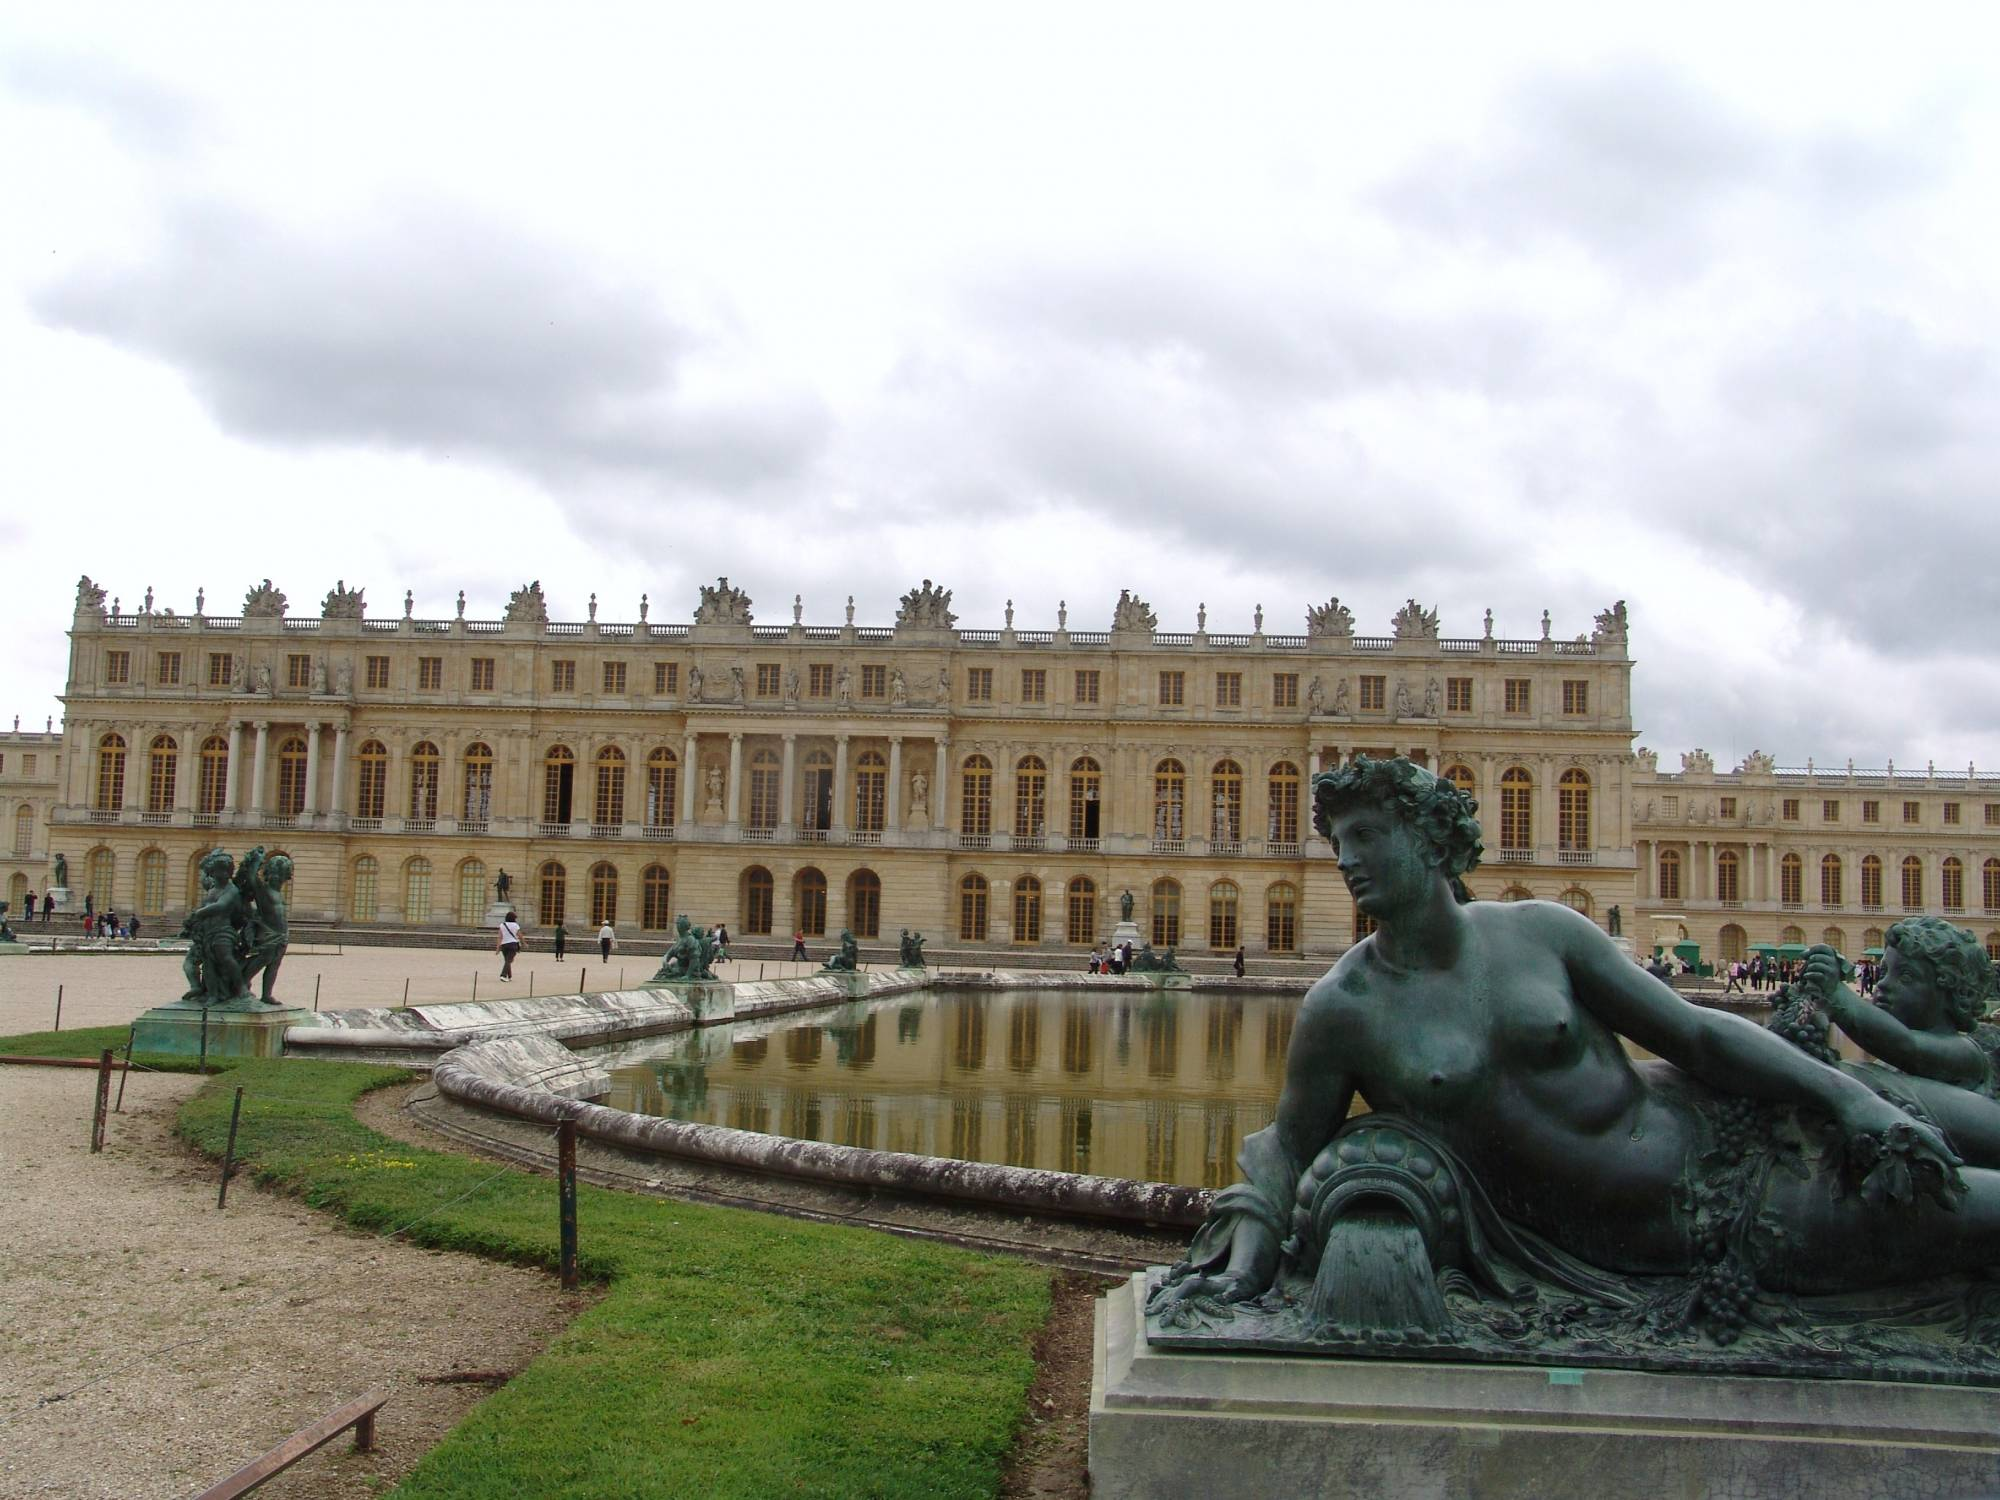 Explore the gardens of Versailles |PassPorter.com